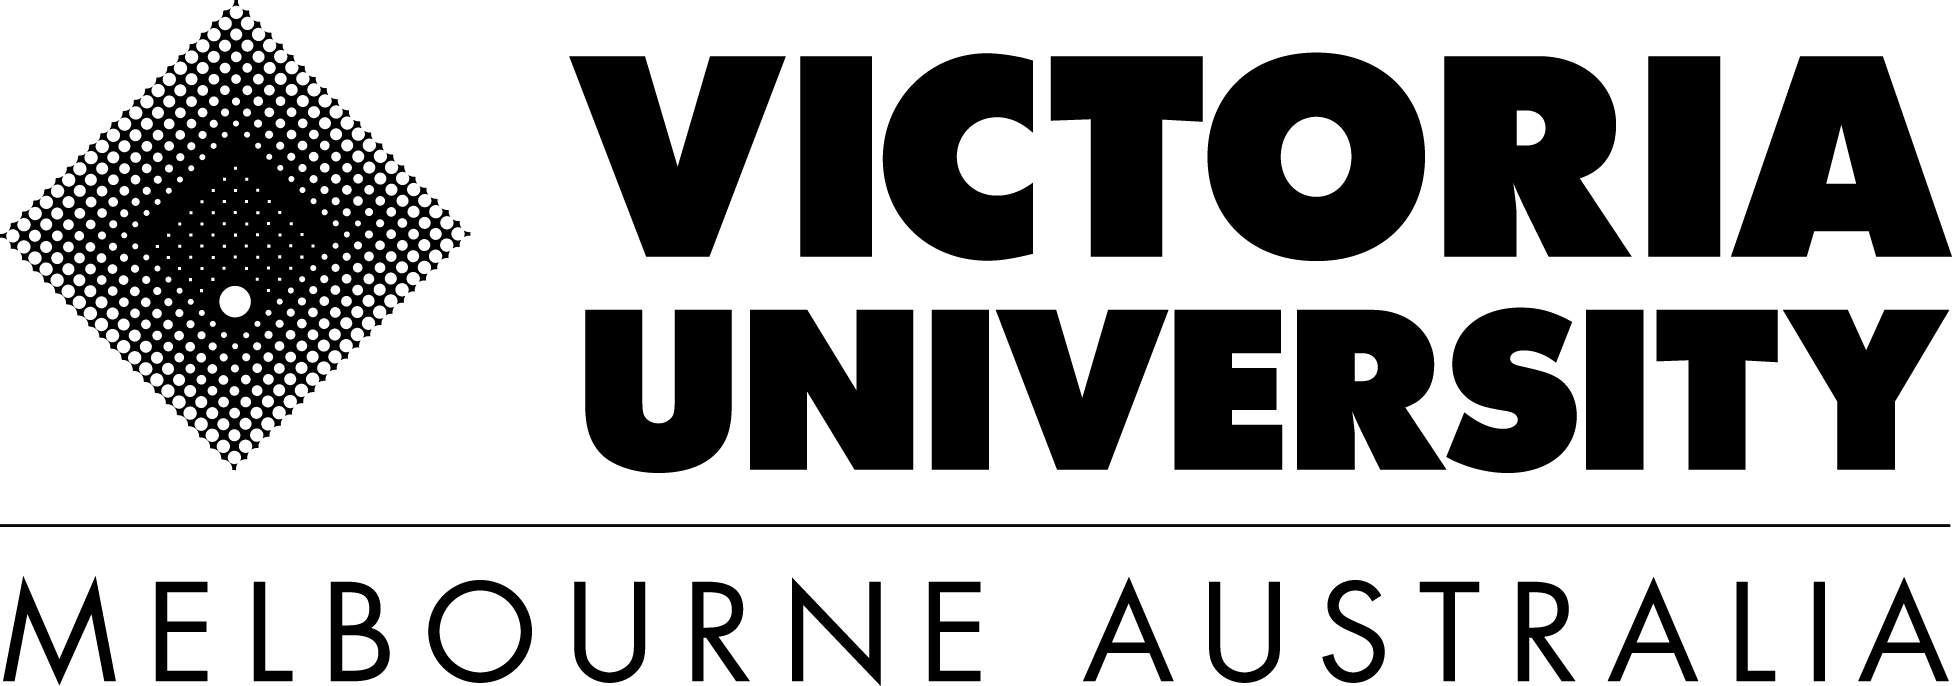 Victoria-University-logo-high-res-mono